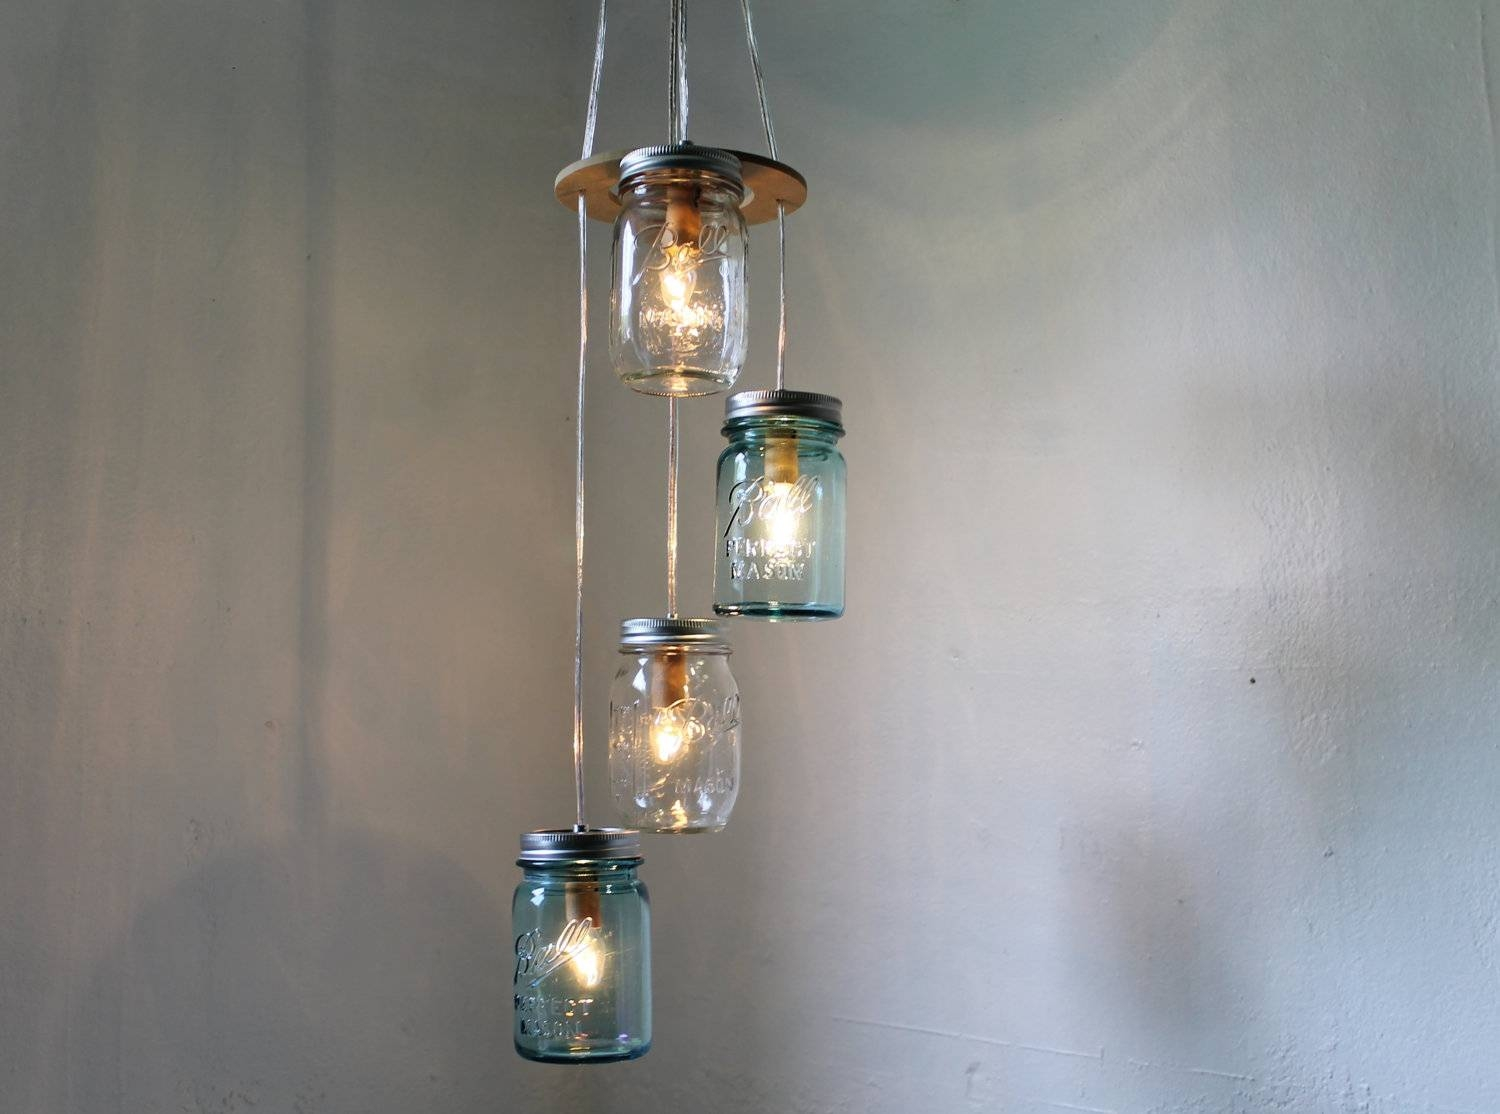 Mason Jar Light Fixture Chandelier : Ideas Mason Jar Light Fixture throughout Blue Mason Jar Lights Fixtures (Image 10 of 15)